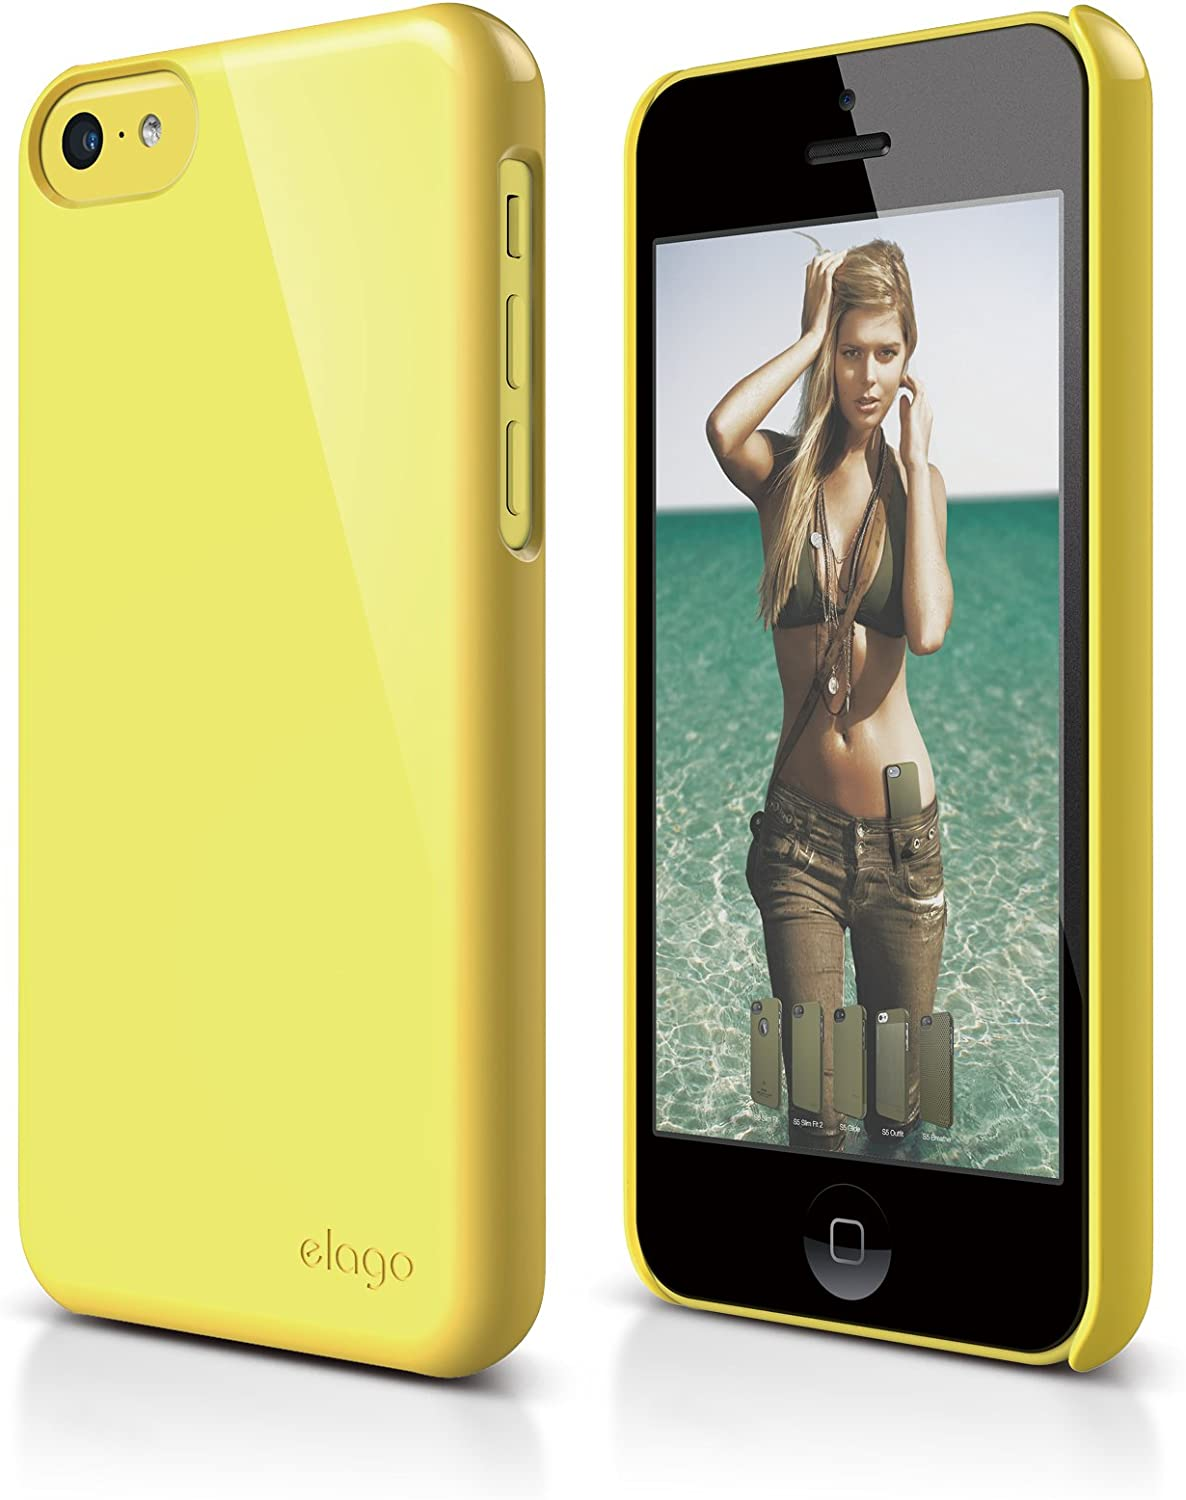 elago S5C Slim Fit 2 Case for iPhone 5C - eco Friendly Retail Packaging (Yellow)